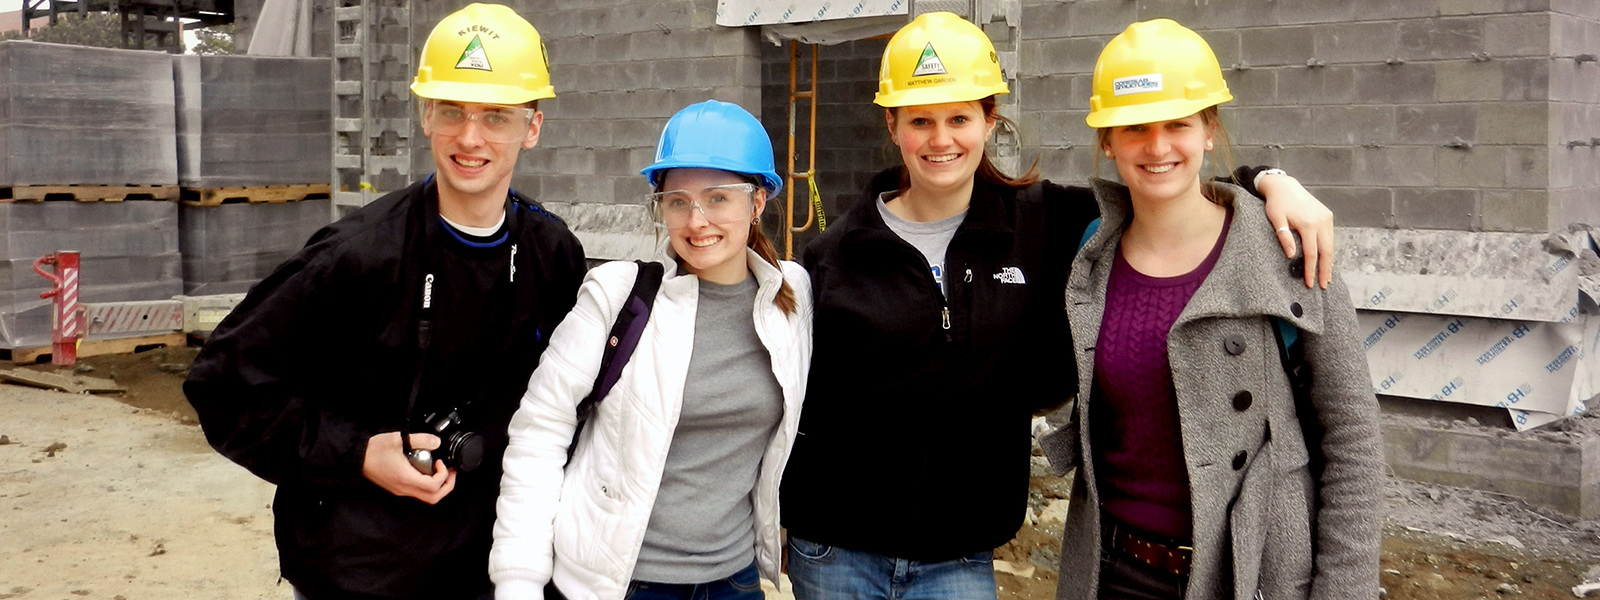 Students with hard hats standing in front of a work site